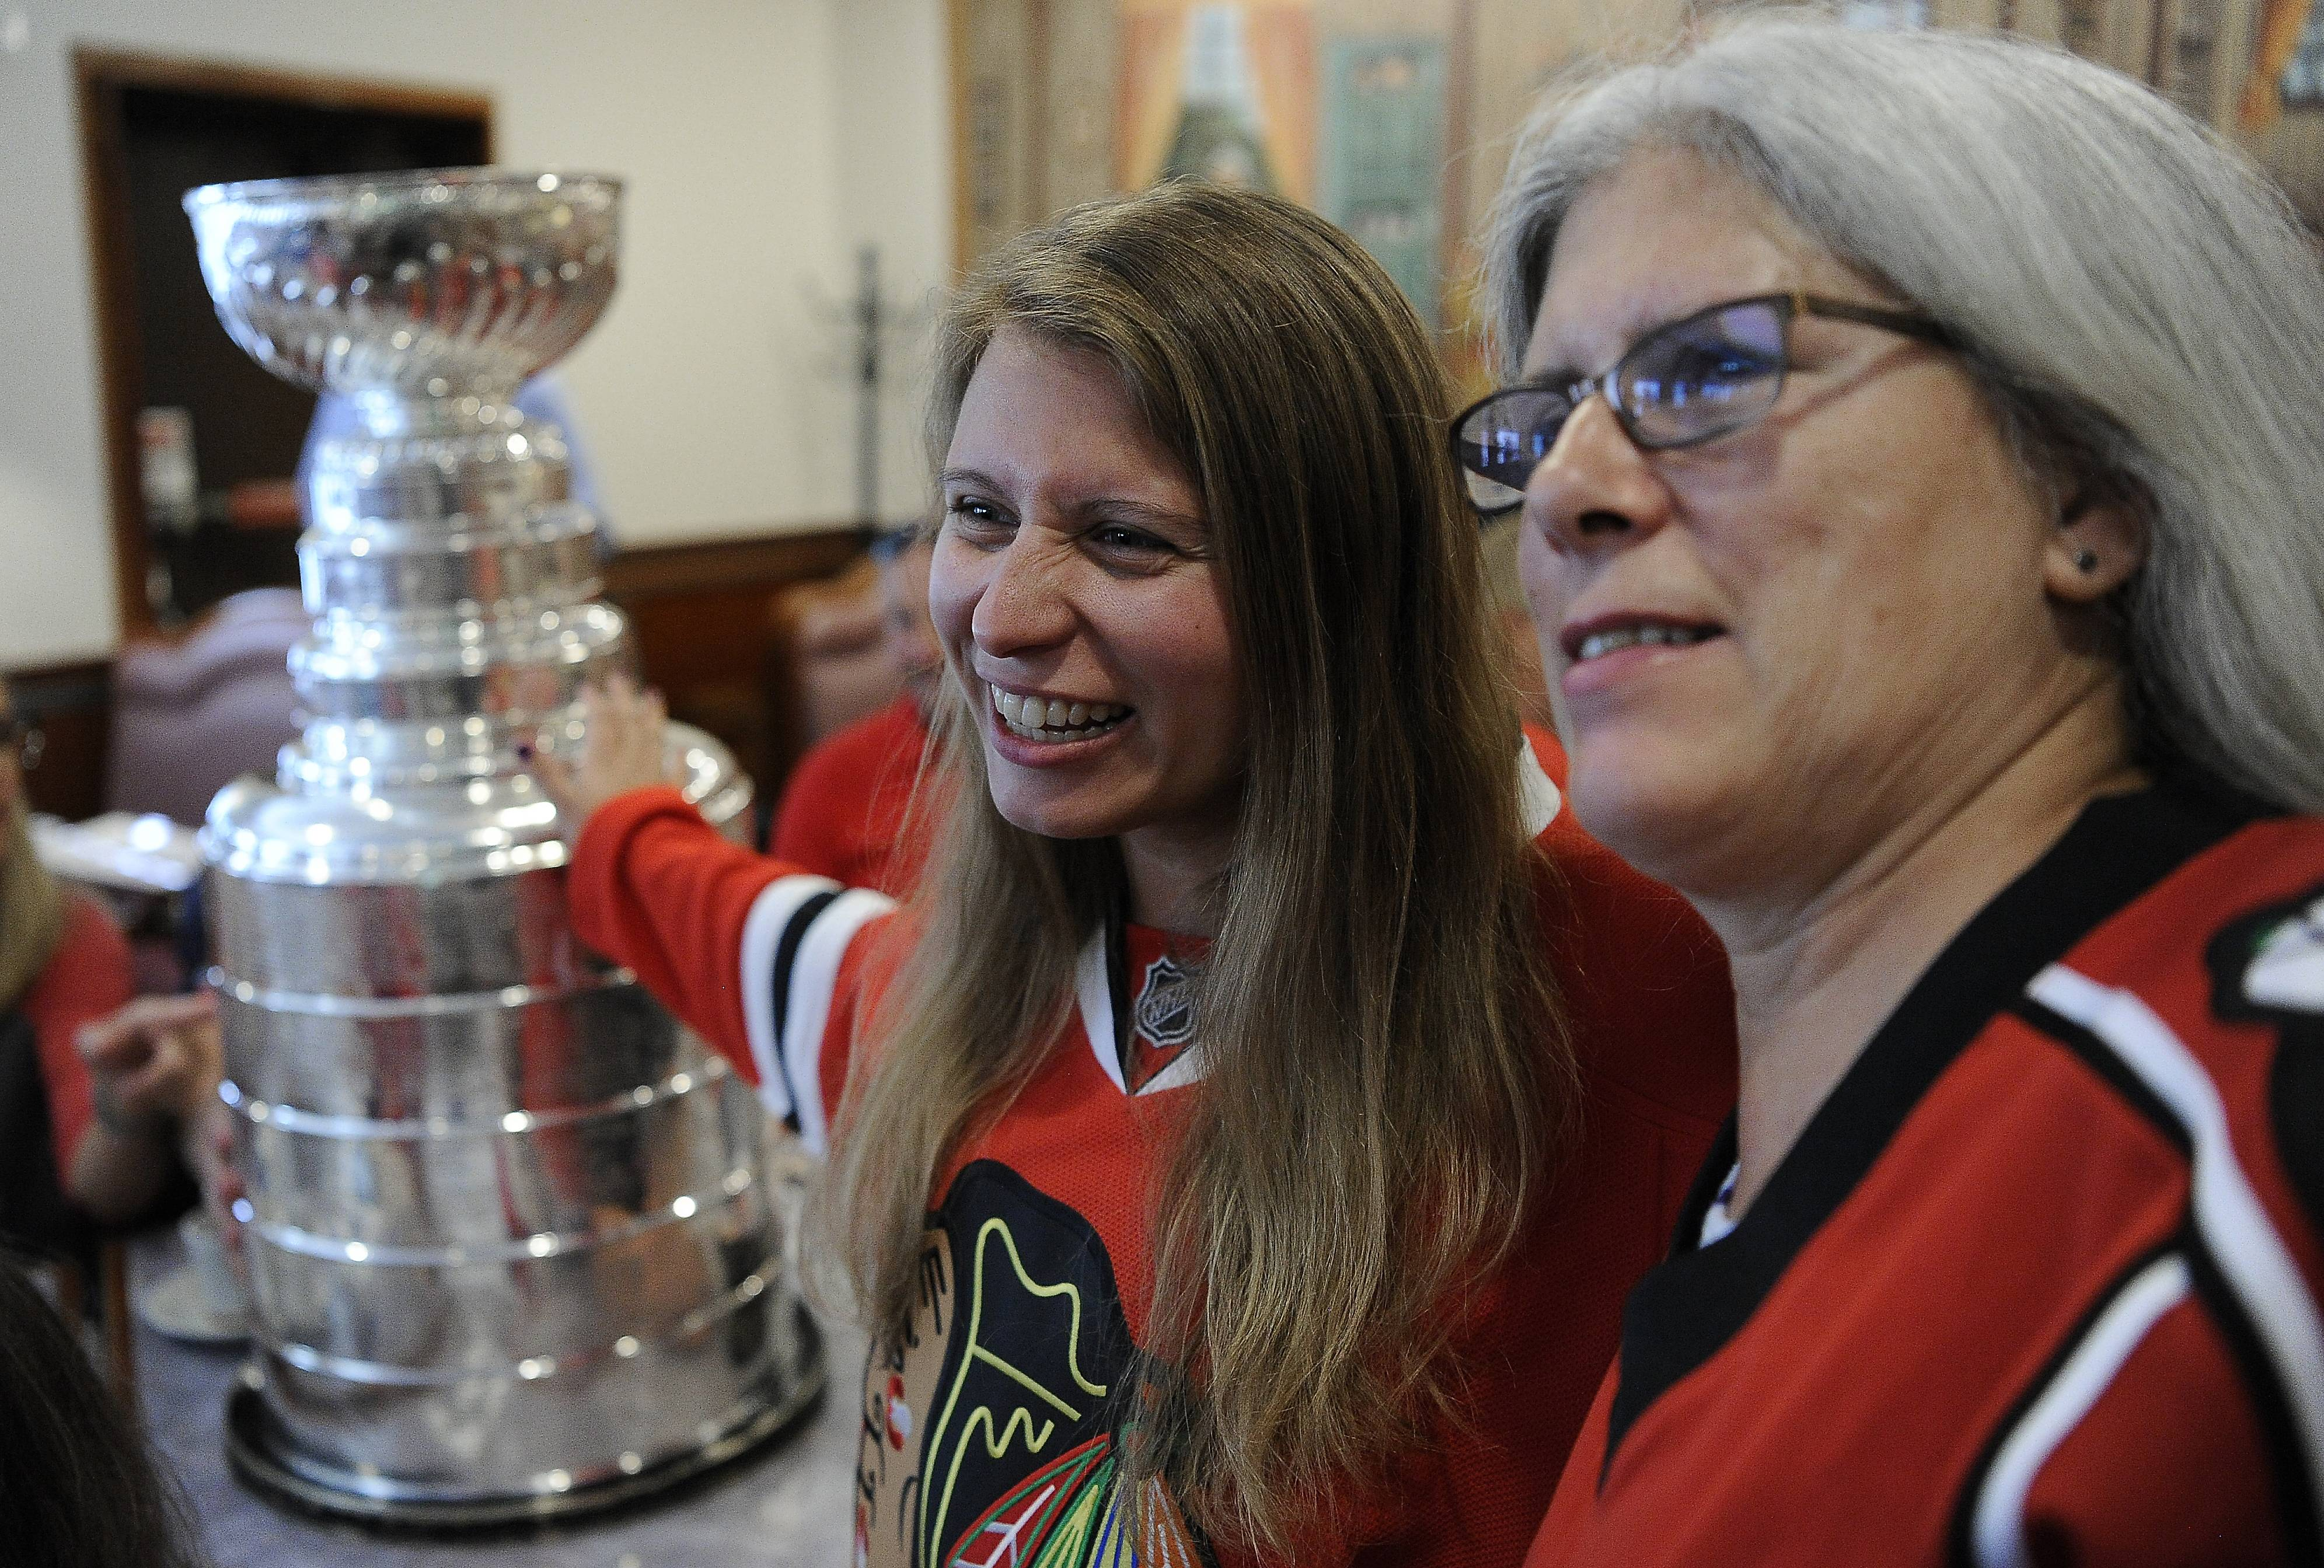 Erin Levine, 27, and her mother, Holli, both of Wheeling, get their picture taken Tuesday with the Stanley Cup at The Original Granny's restaurant in Wheeling.